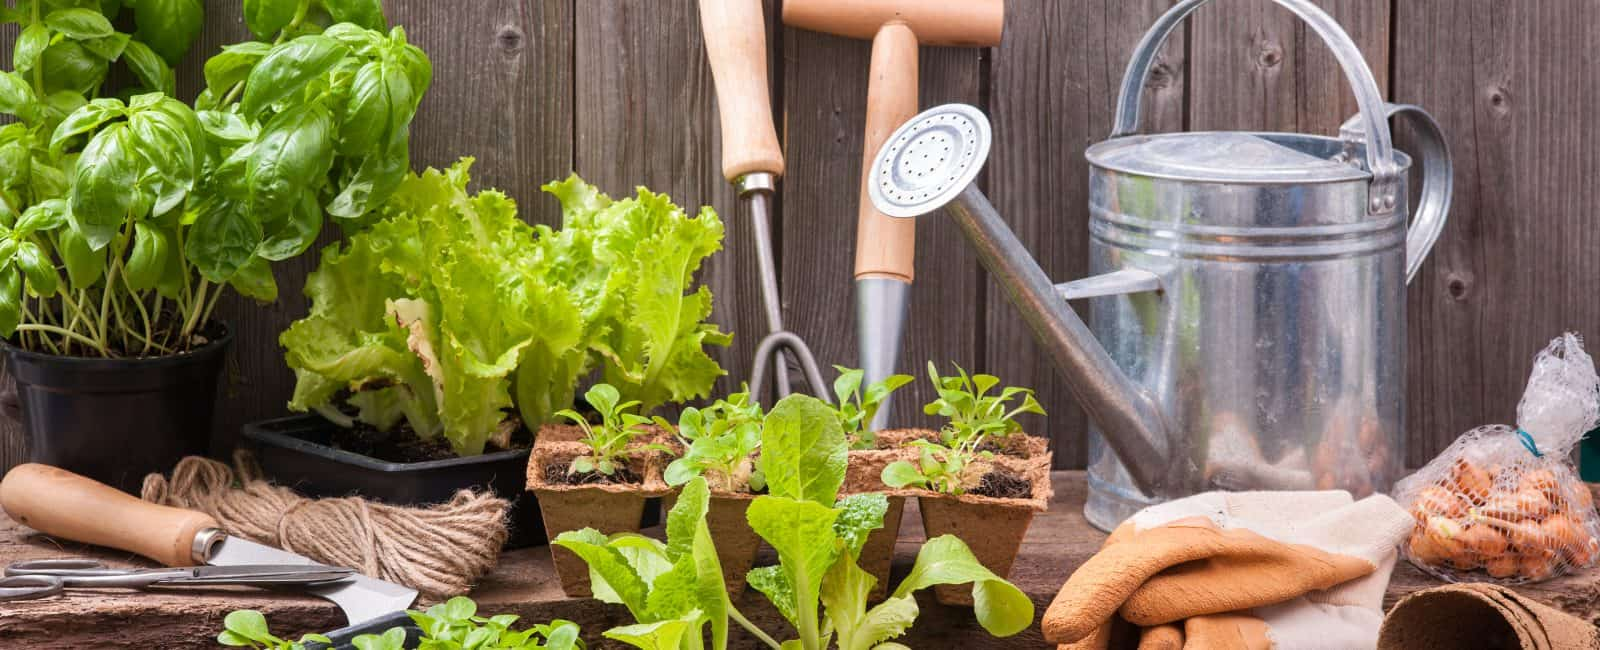 Square Foot Gardening Your Family Will Want To Try